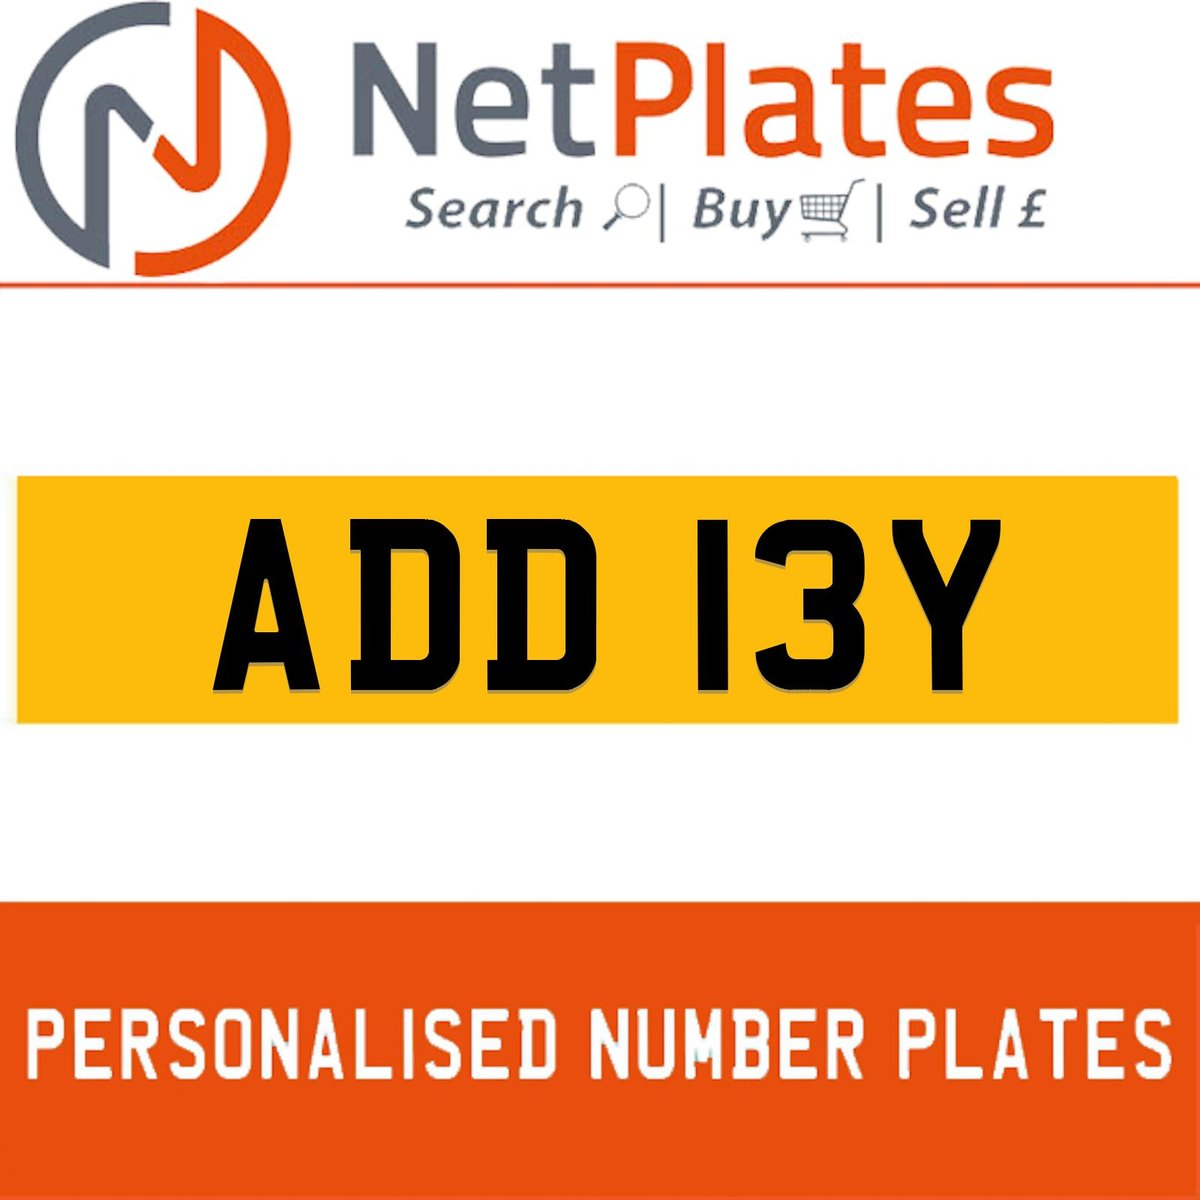 1900 ADD 13Y PERSONALISED PRIVATE CHERISHED DVLA NUMBER PLATE For Sale (picture 1 of 1)